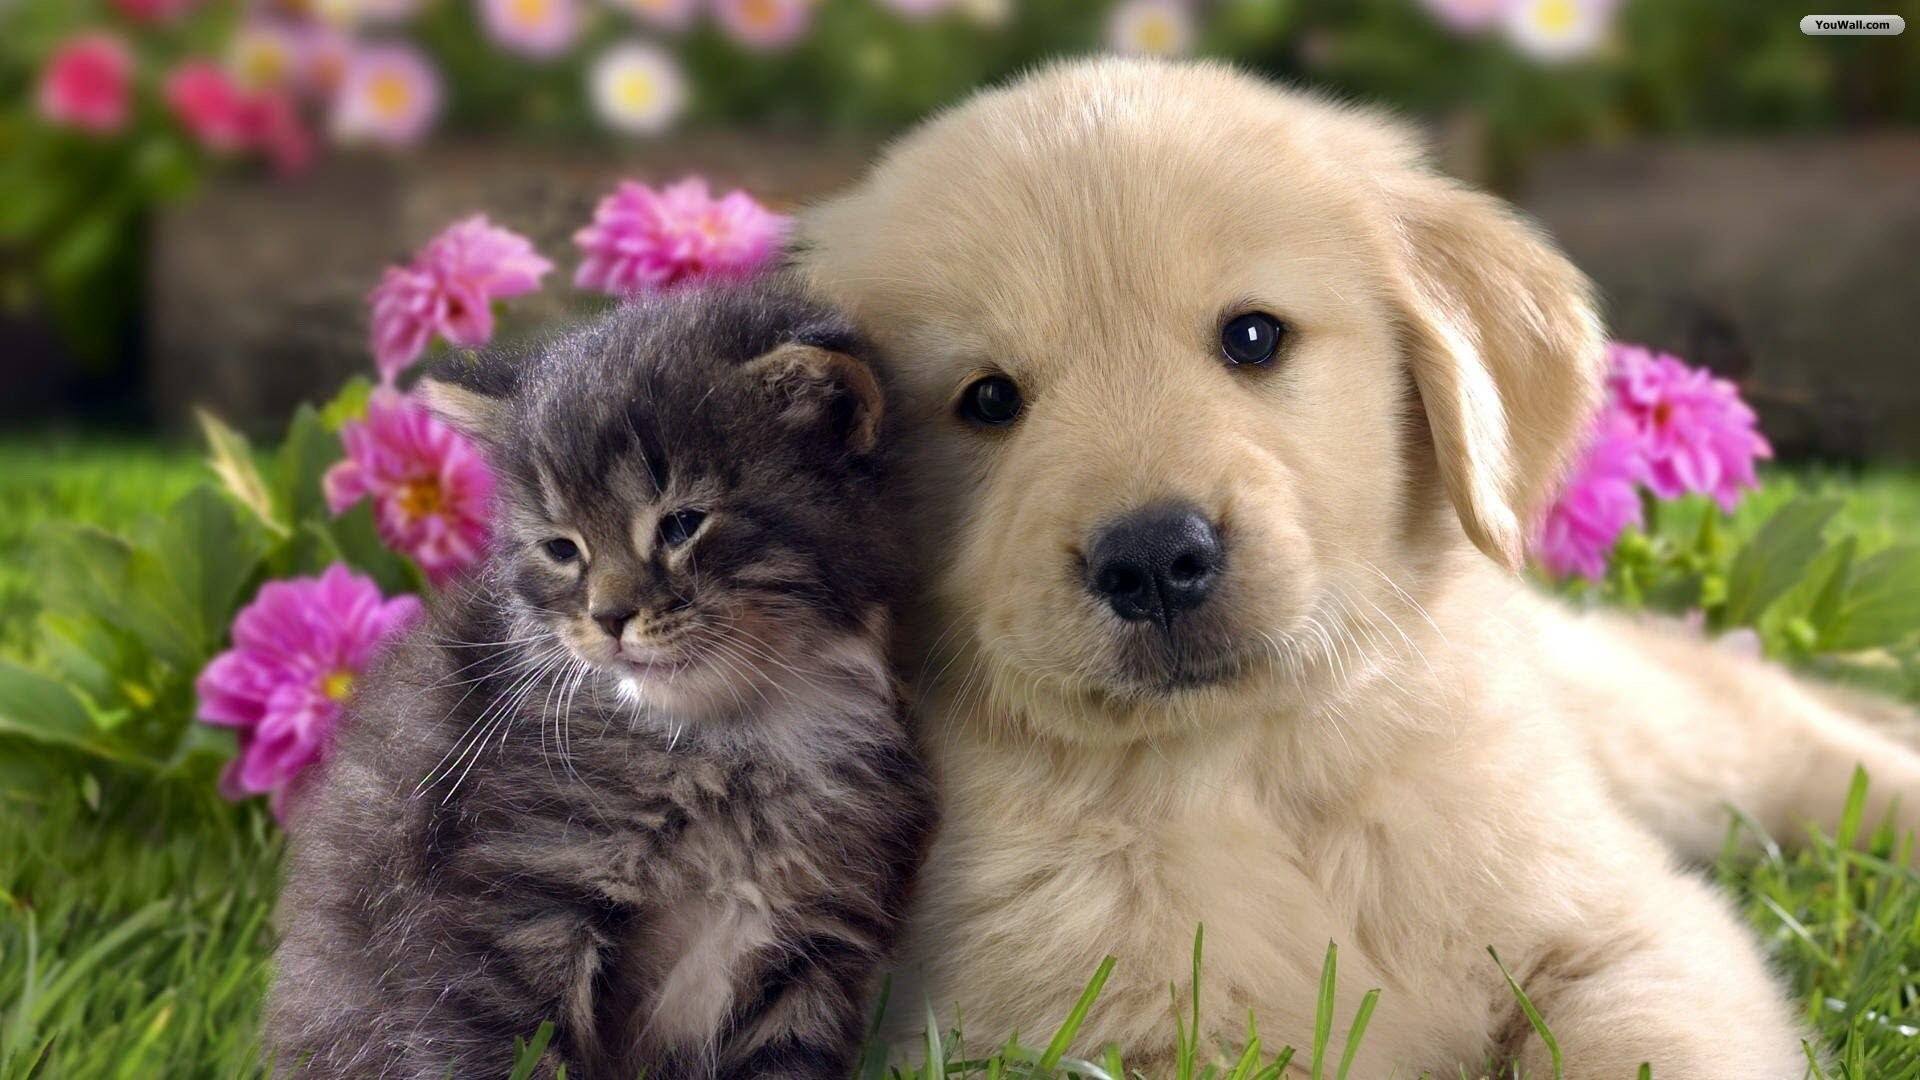 cats dogs wallpaper desktop (51+ images)